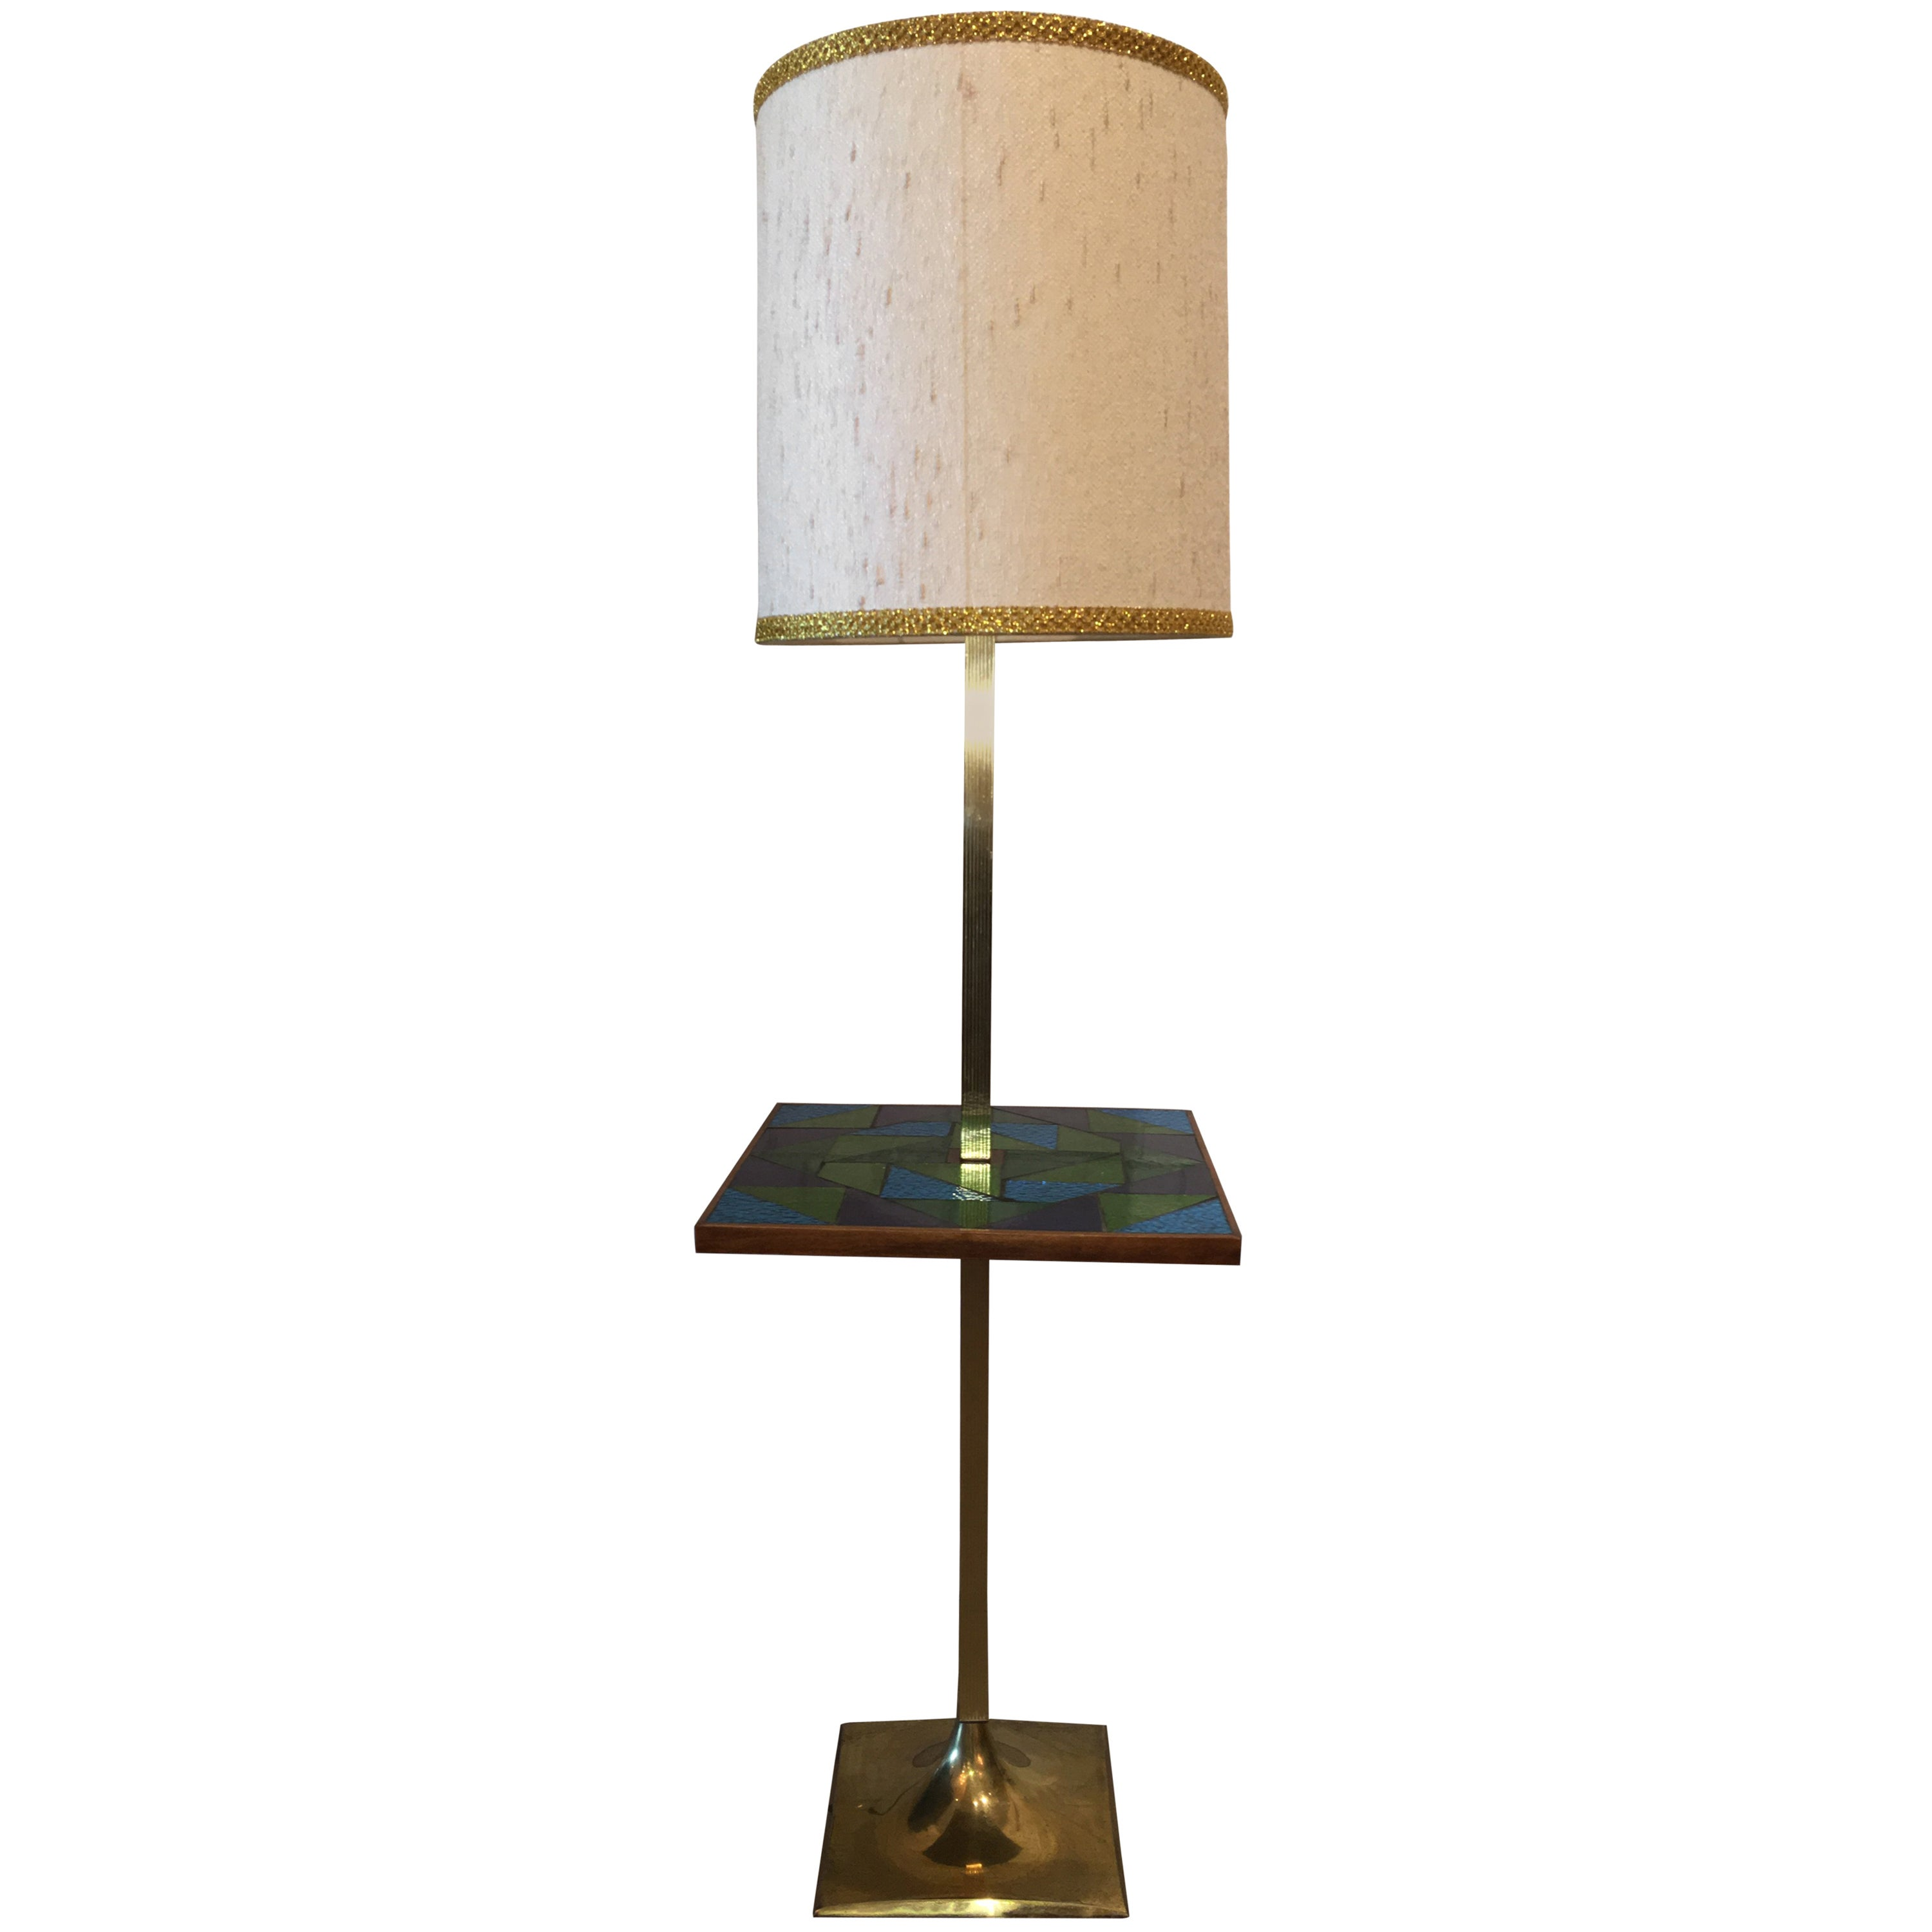 happy floor barn you chandeliers thomas floors beautiful reviews chandelier is bella capiz it pottery lamp if this of drop down edison want friday shell a full review size